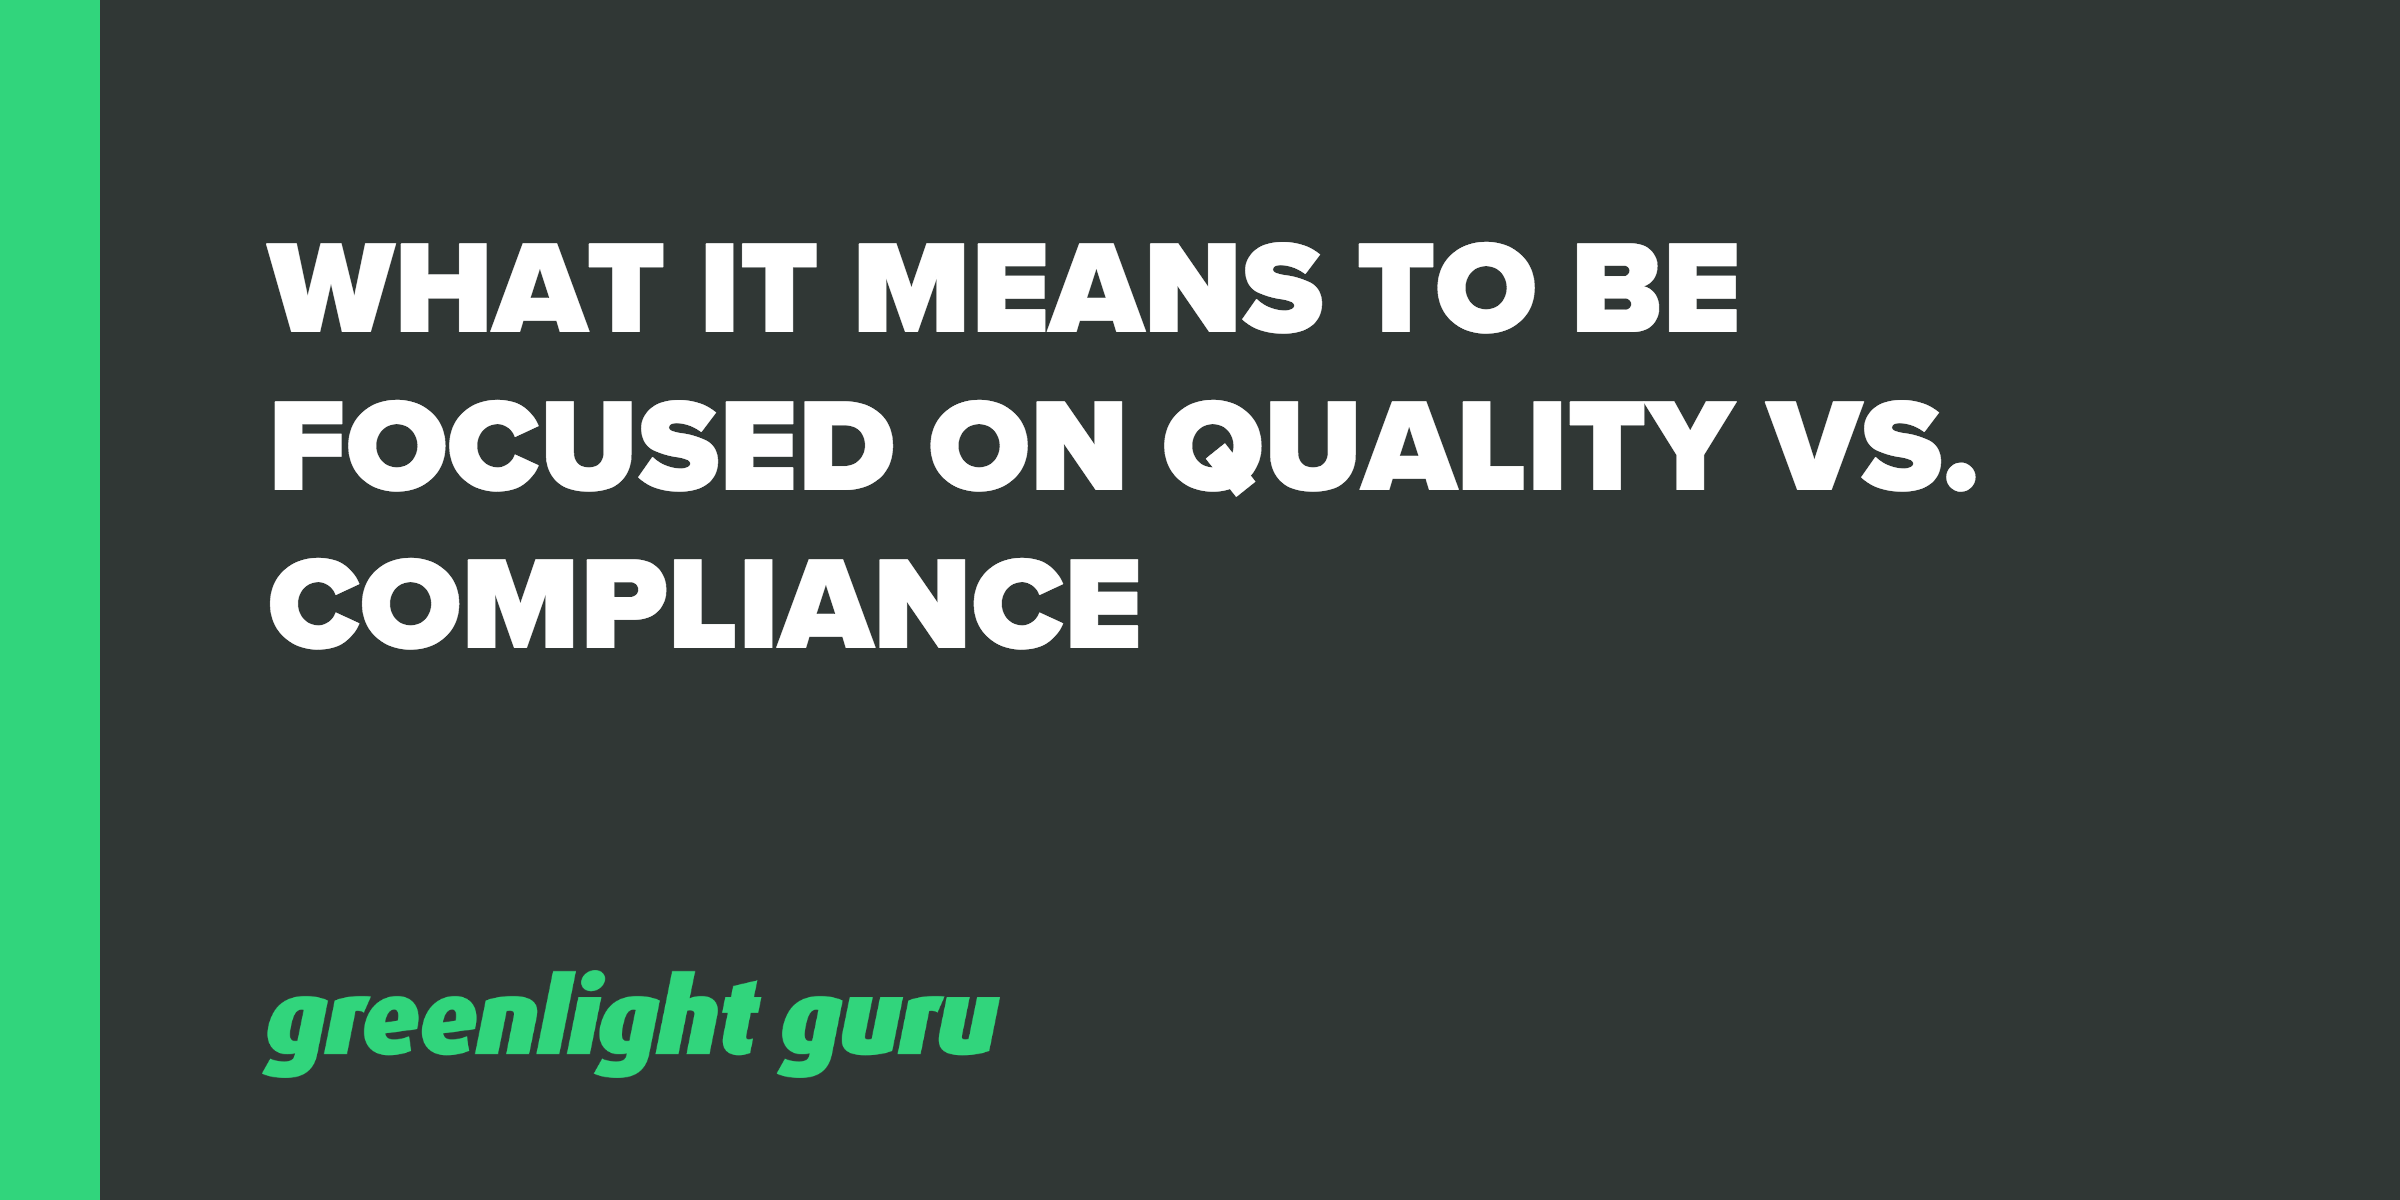 focused-quality-vs-compliance